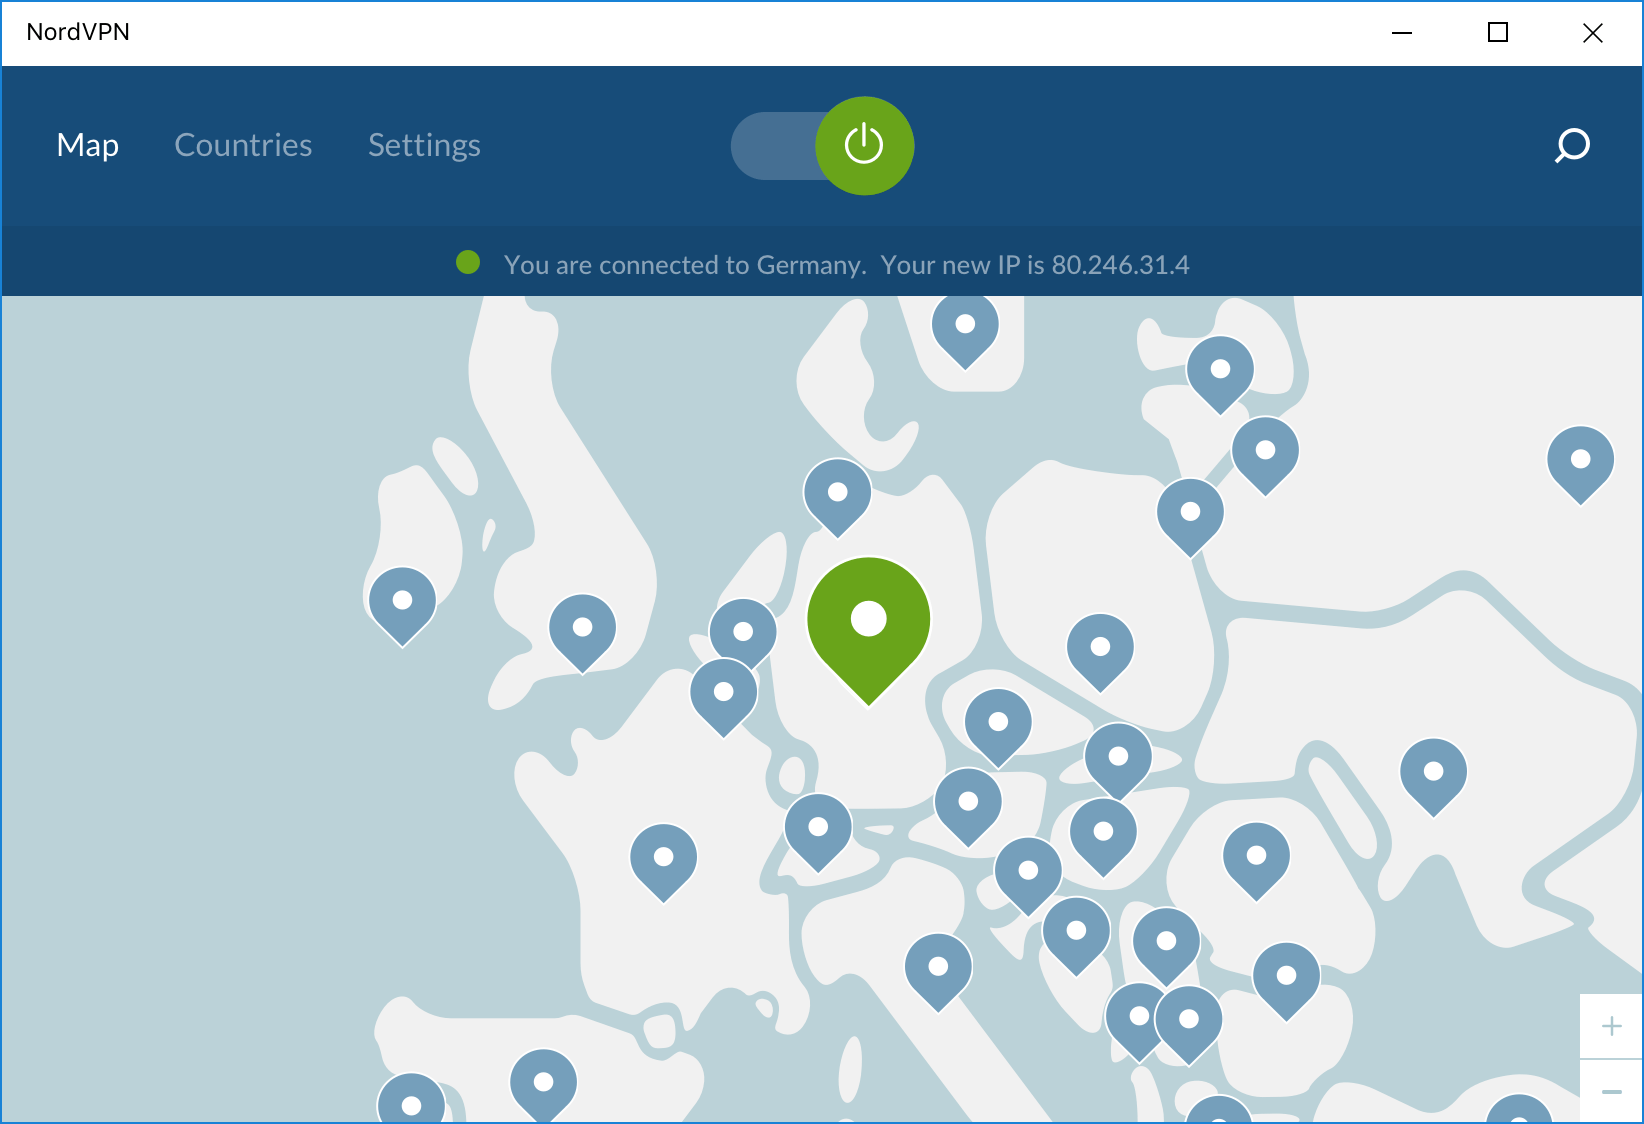 nordvpn-app-interface